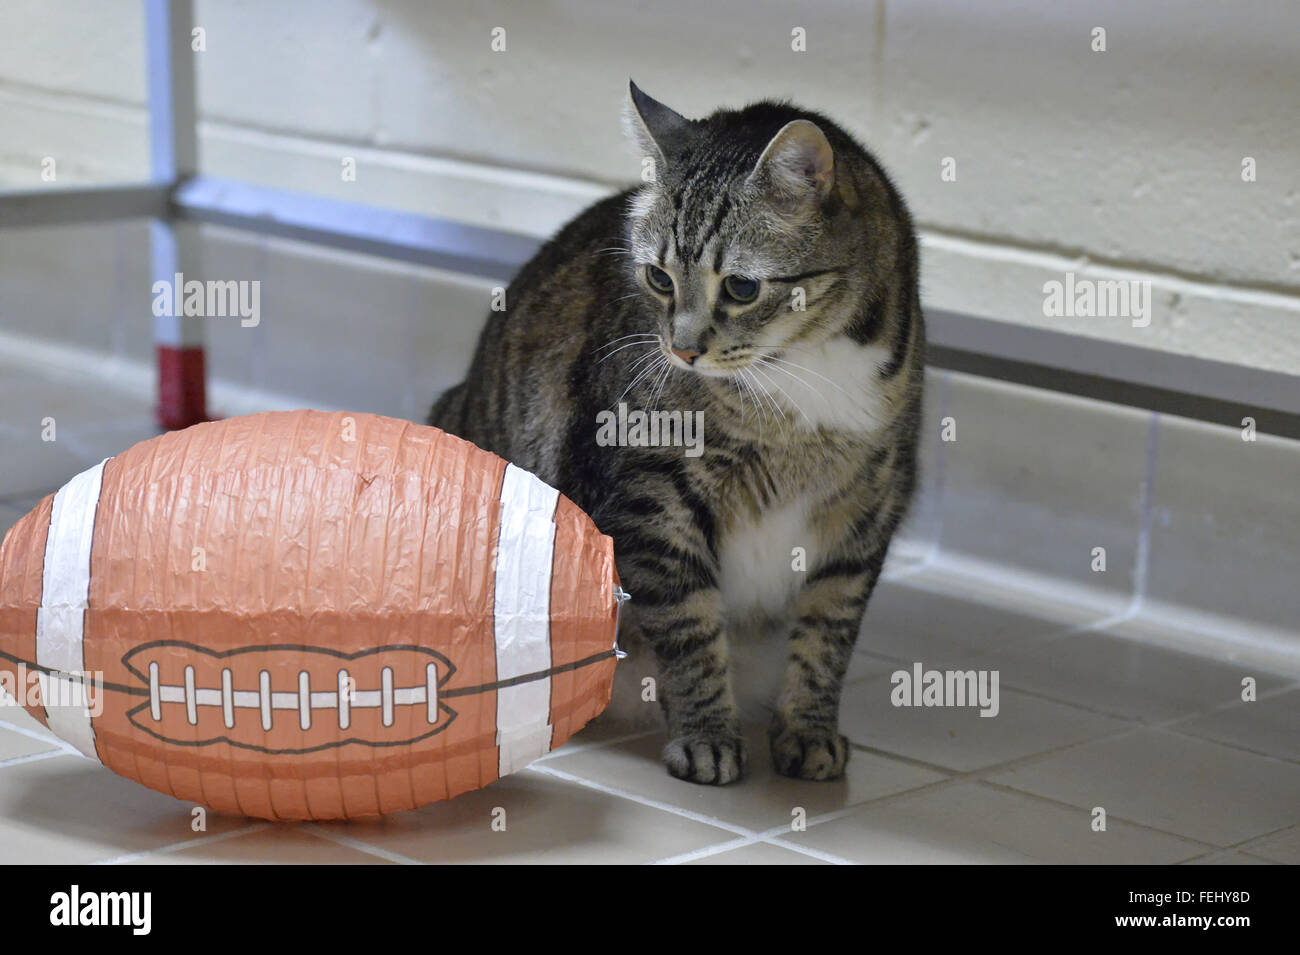 Wantagh, New York, USA. 7th Feb, 2016. Curious tabby cat ALEXANDER, the Mayor of Last Hope Rescue, looks at a football - Stock Image